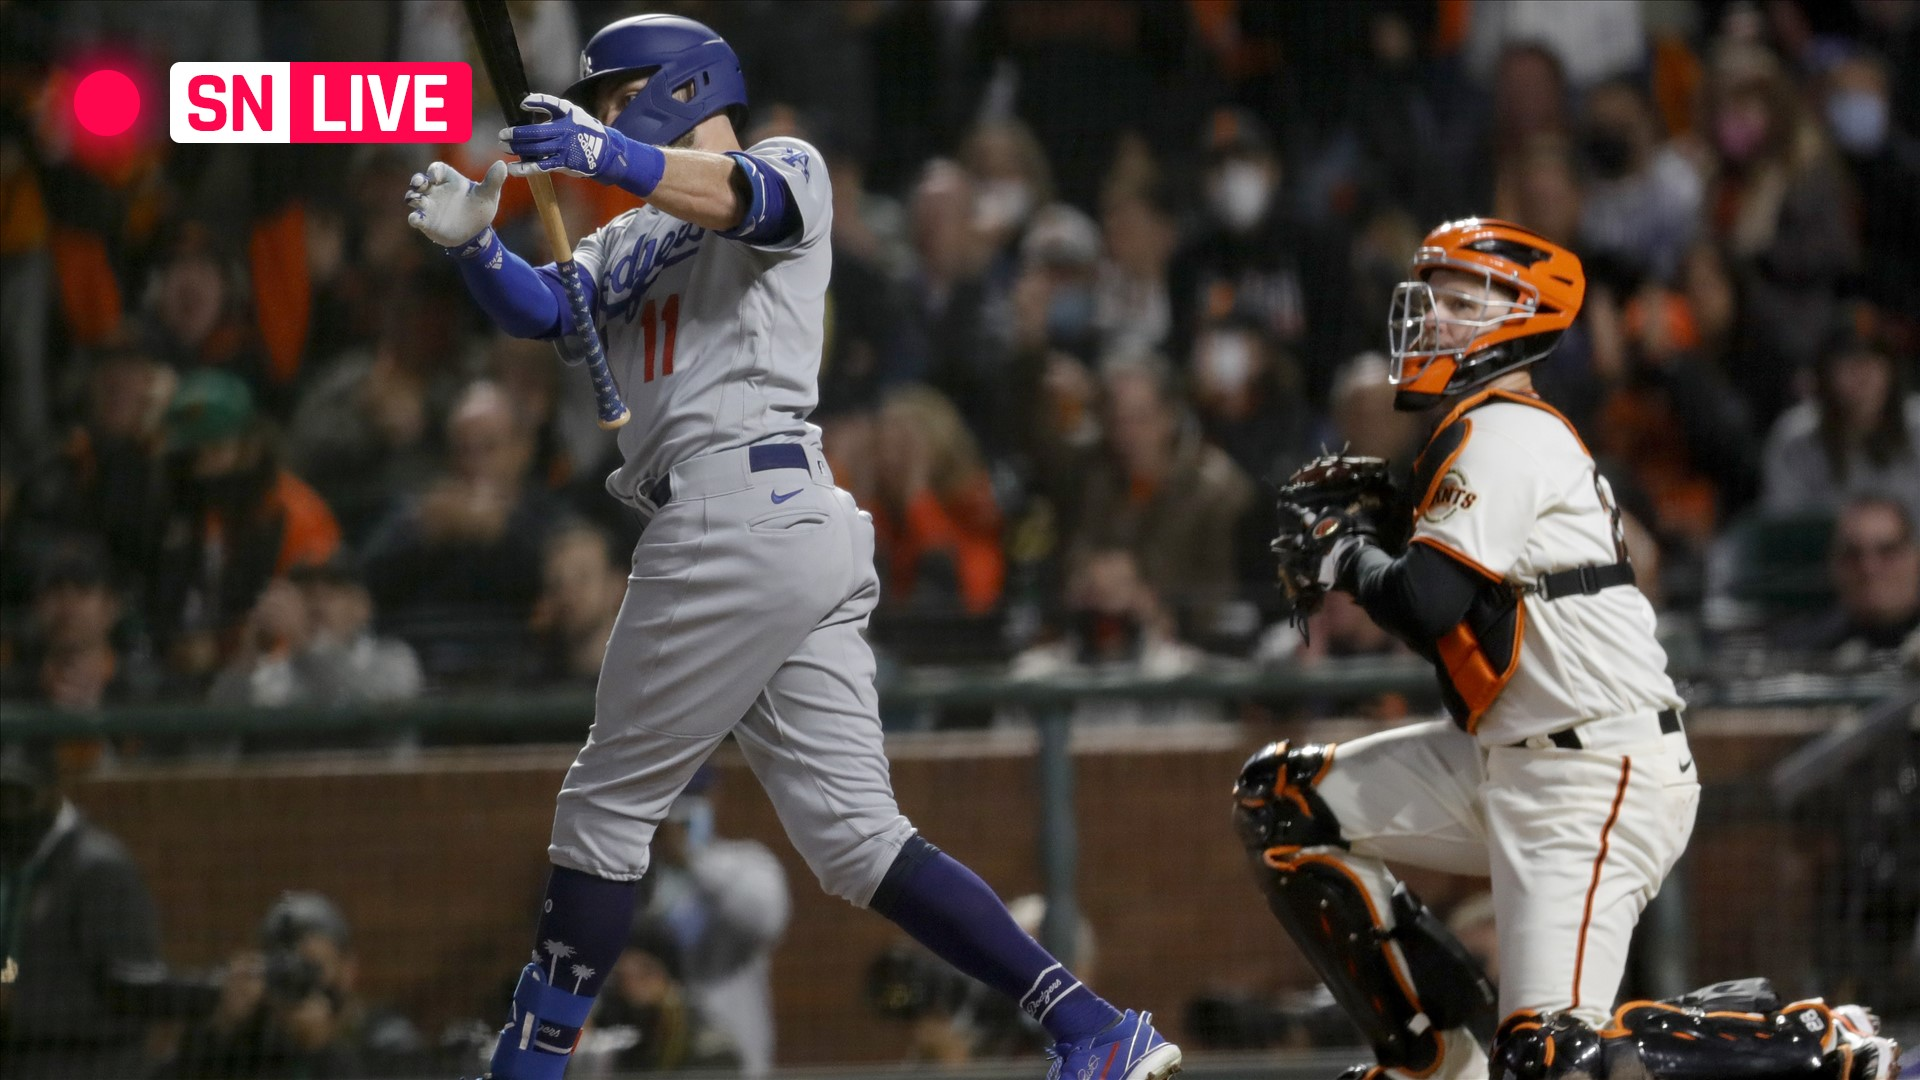 Dodgers vs. Giants live score, updates, highlights from 2021 NLDS Game 5